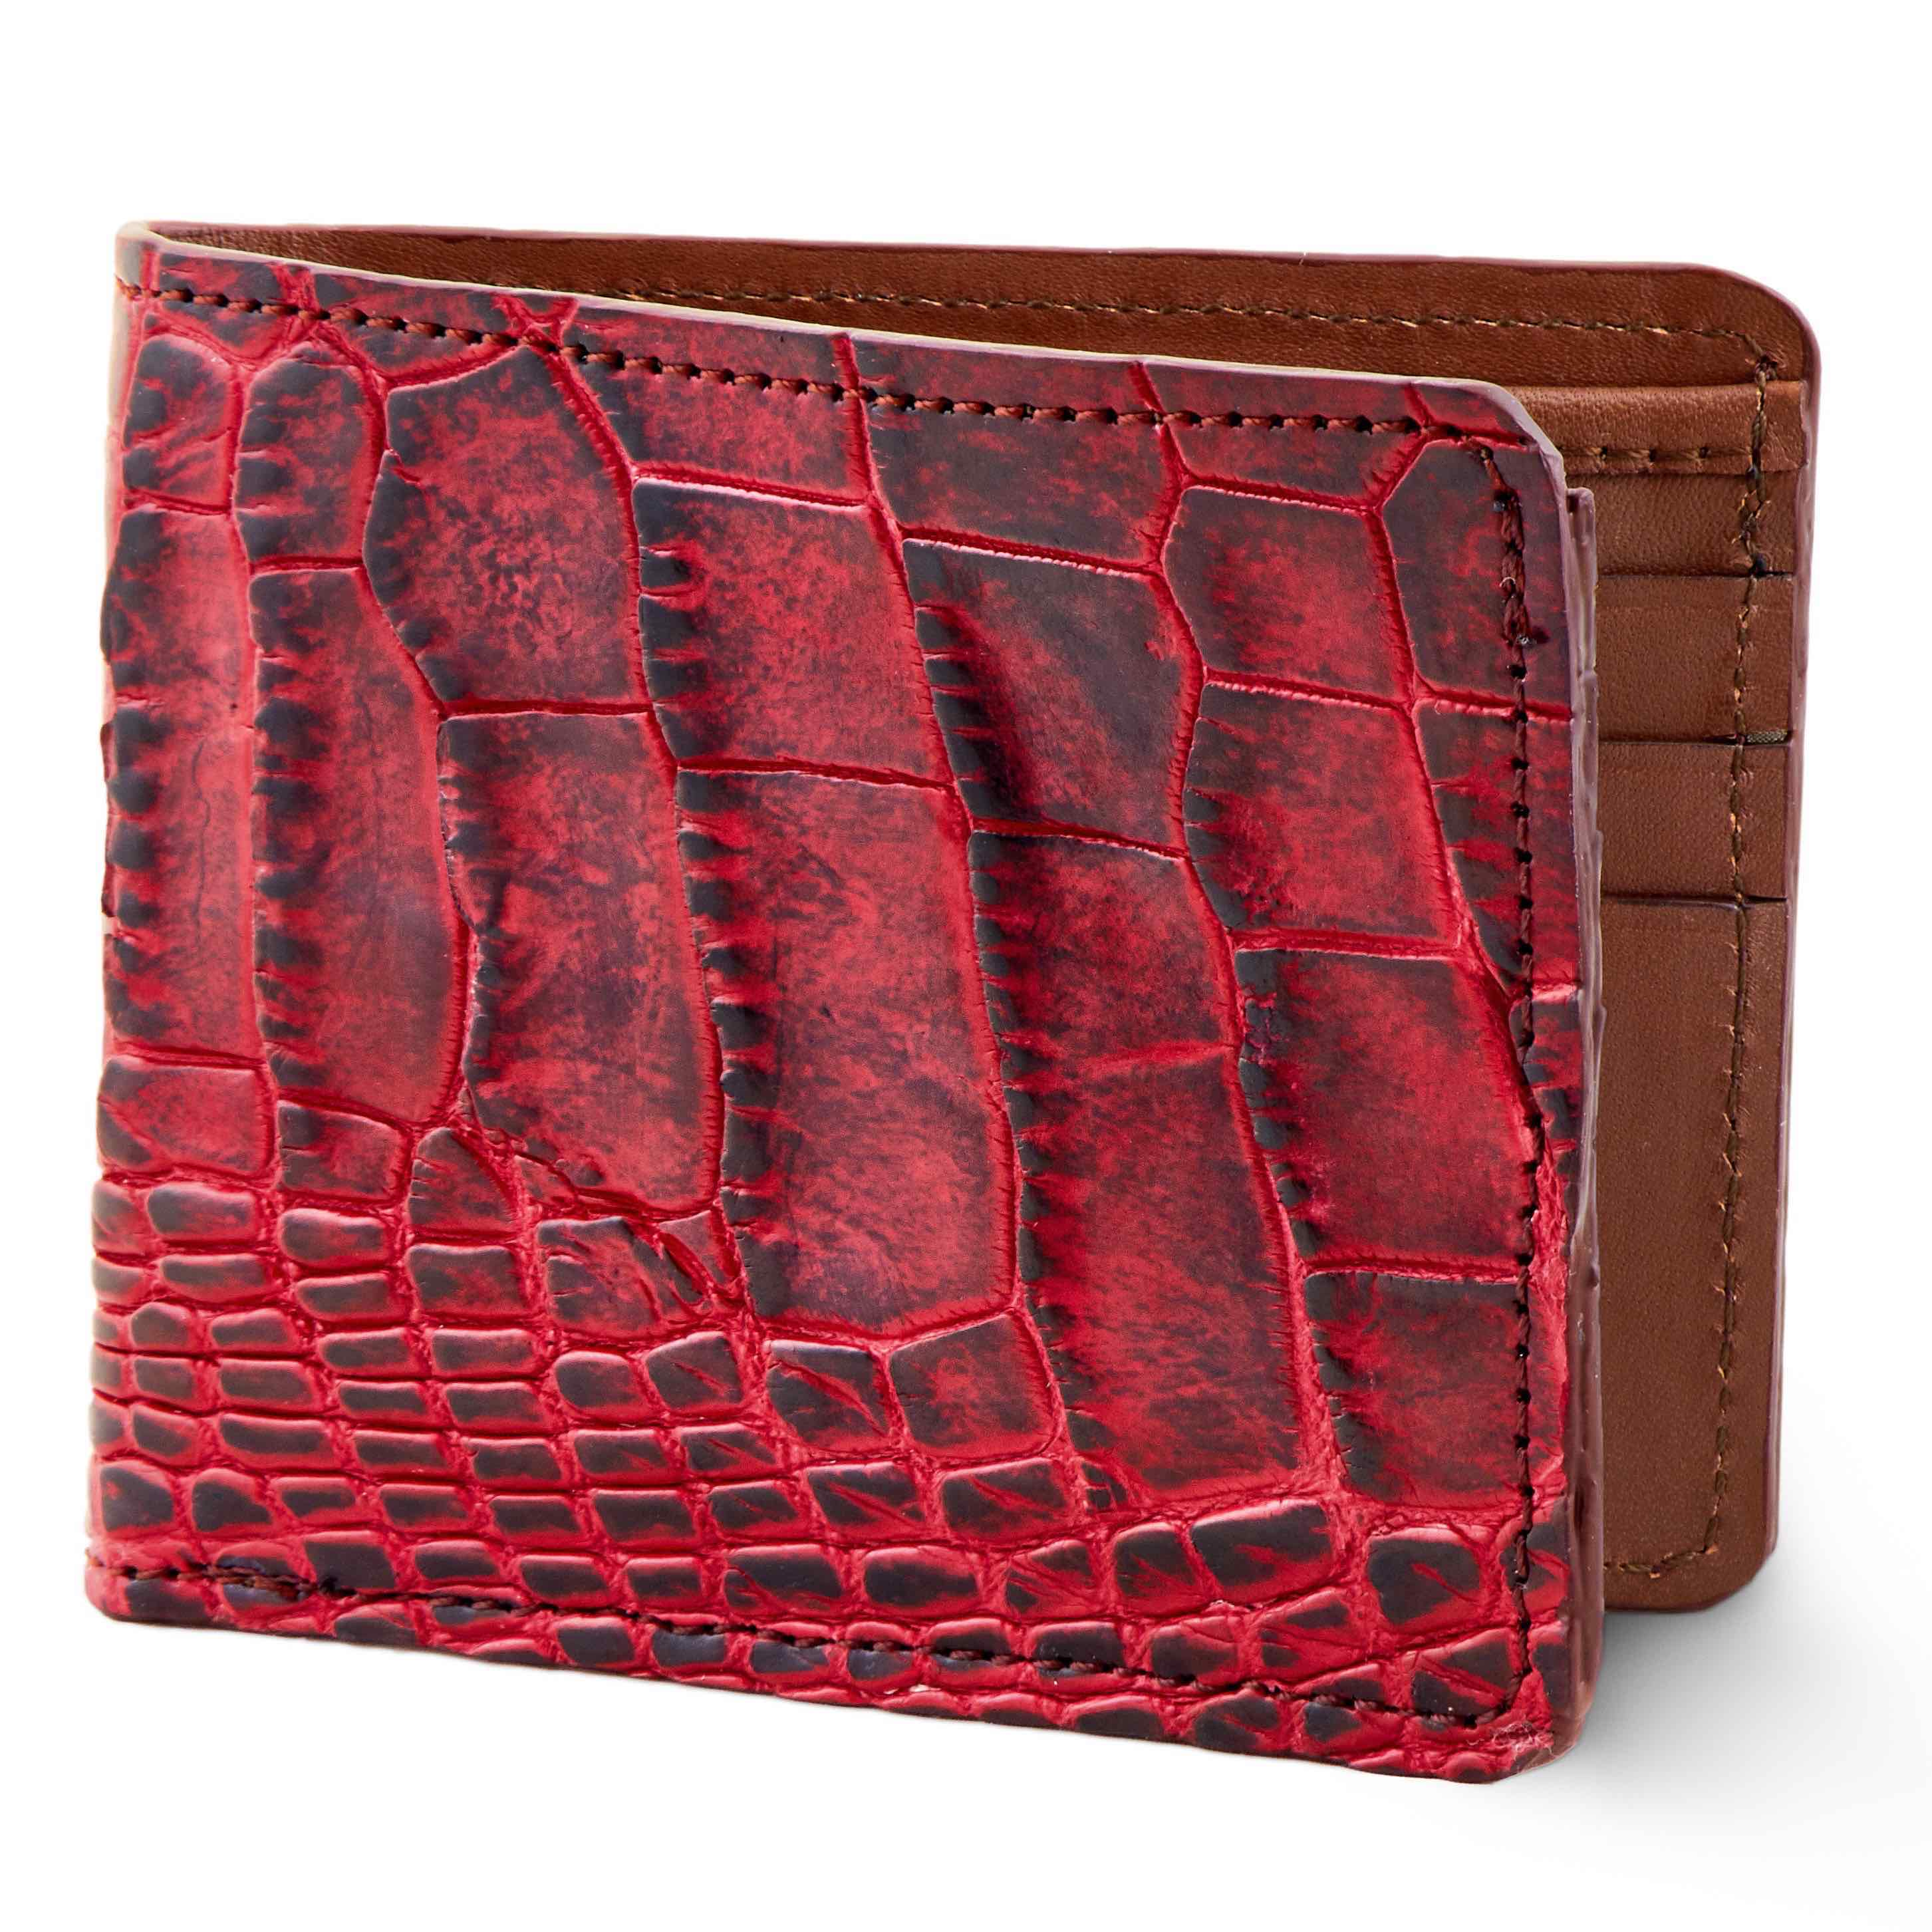 5 Modern Alligator Wallets